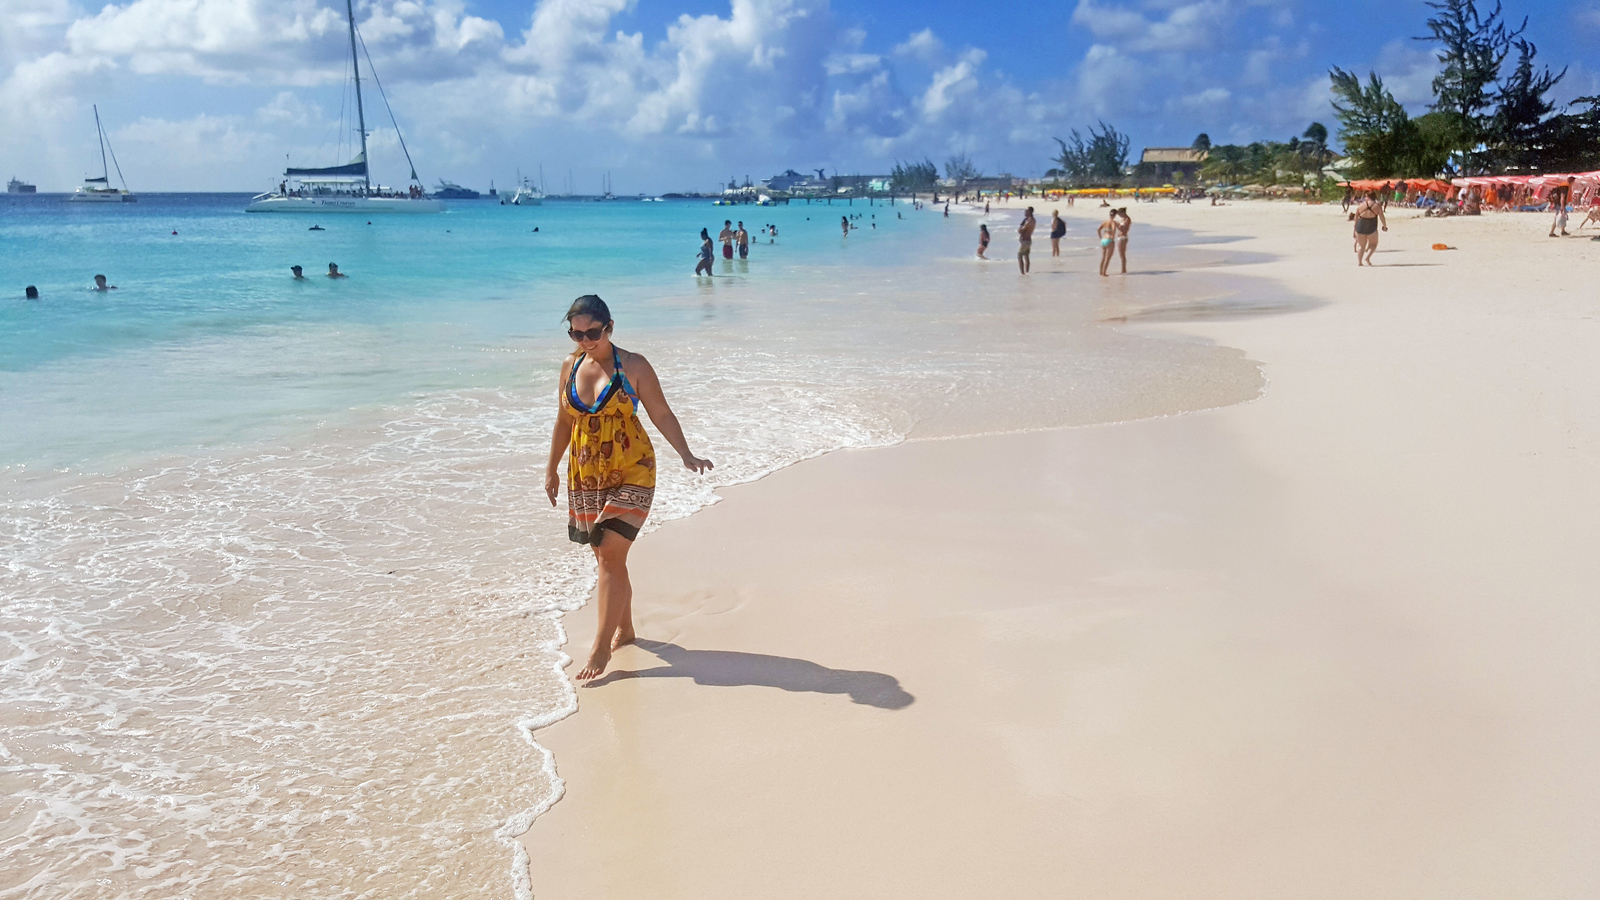 Vegan Cruise of the Caribbean: The Best Vegan Vacation